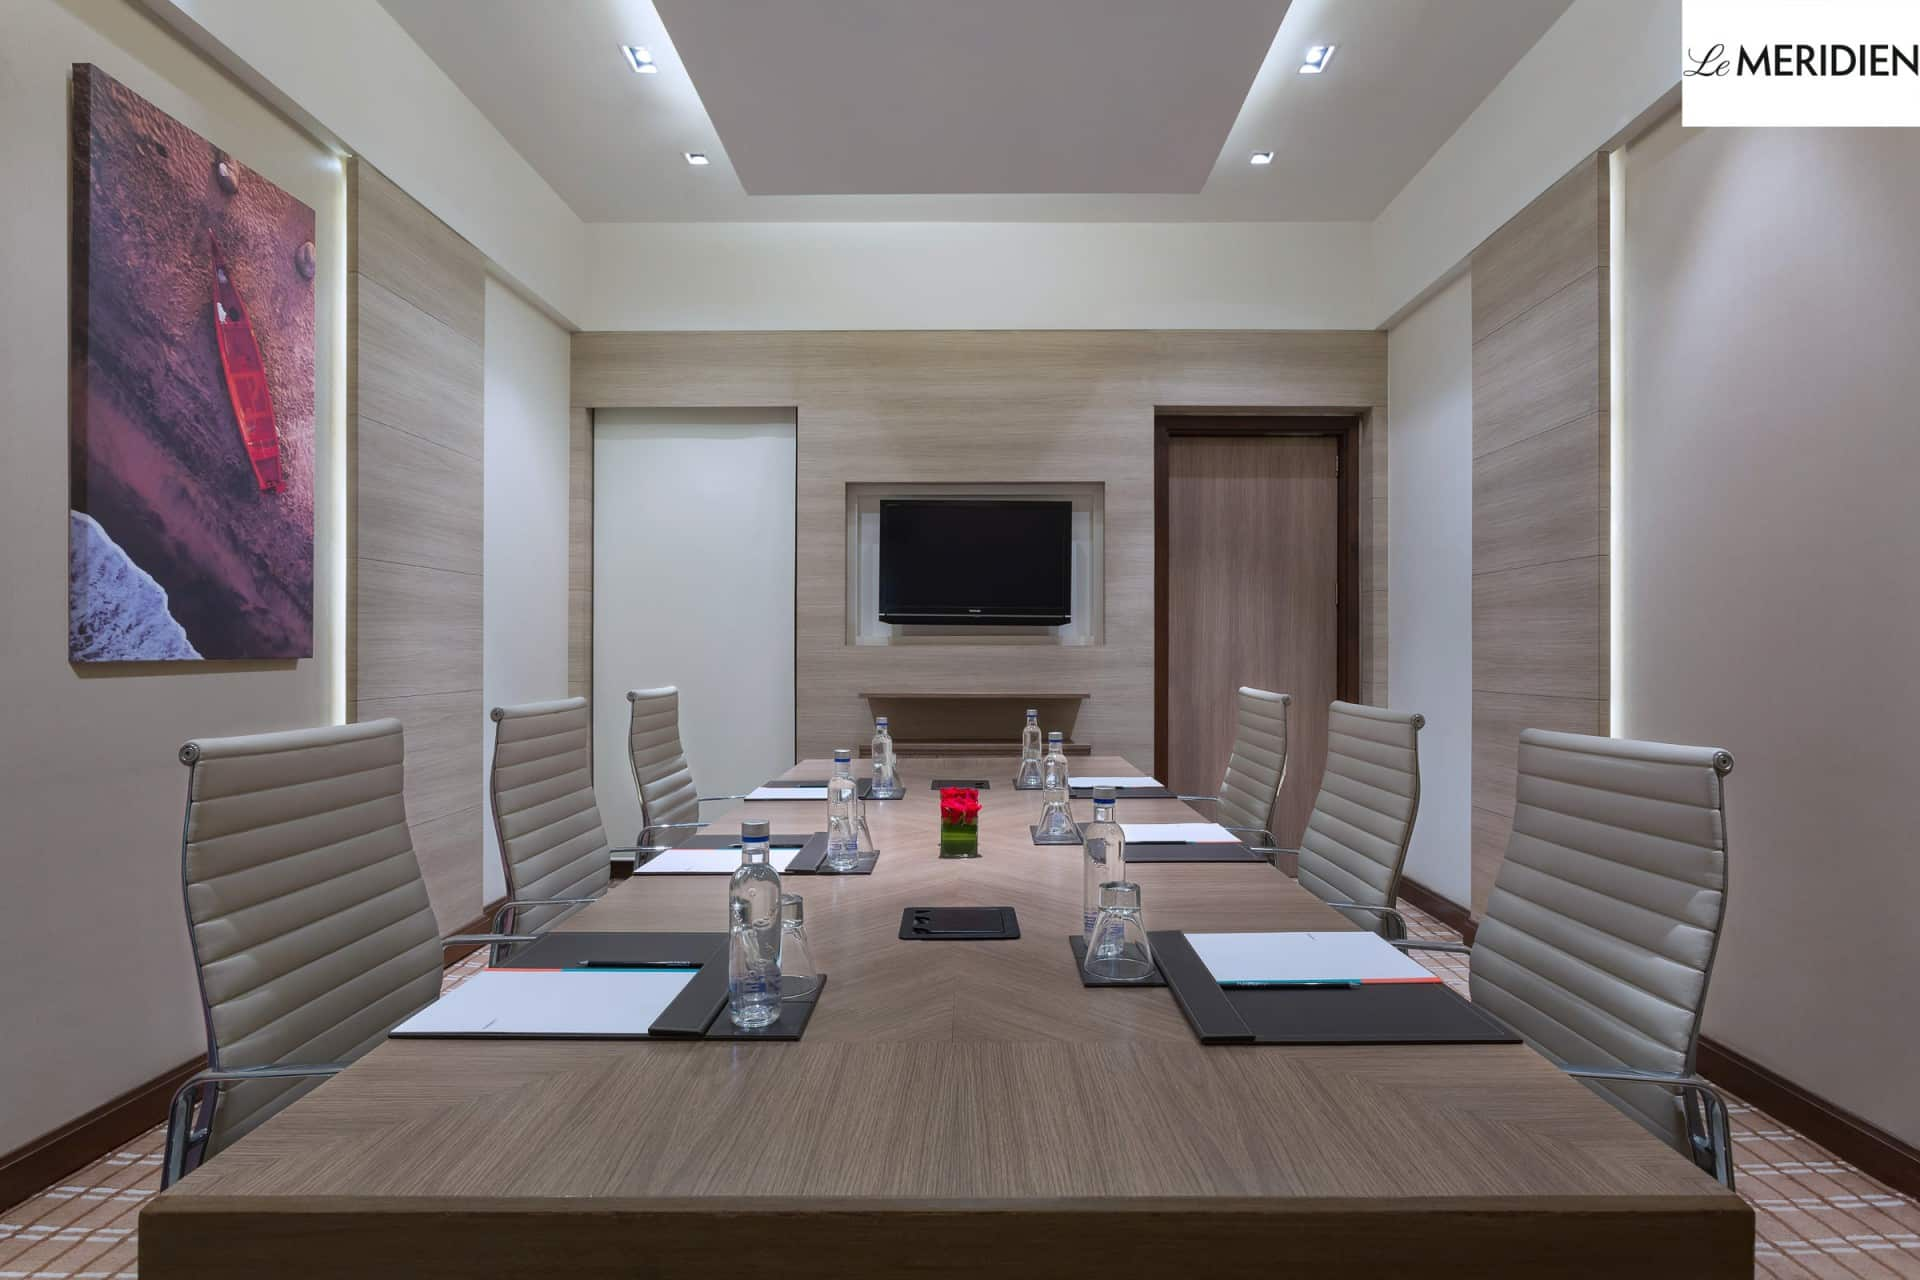 Best Architecture Photography New Delhi | Photography Of Le Meridien Conference  Room Gurgaon